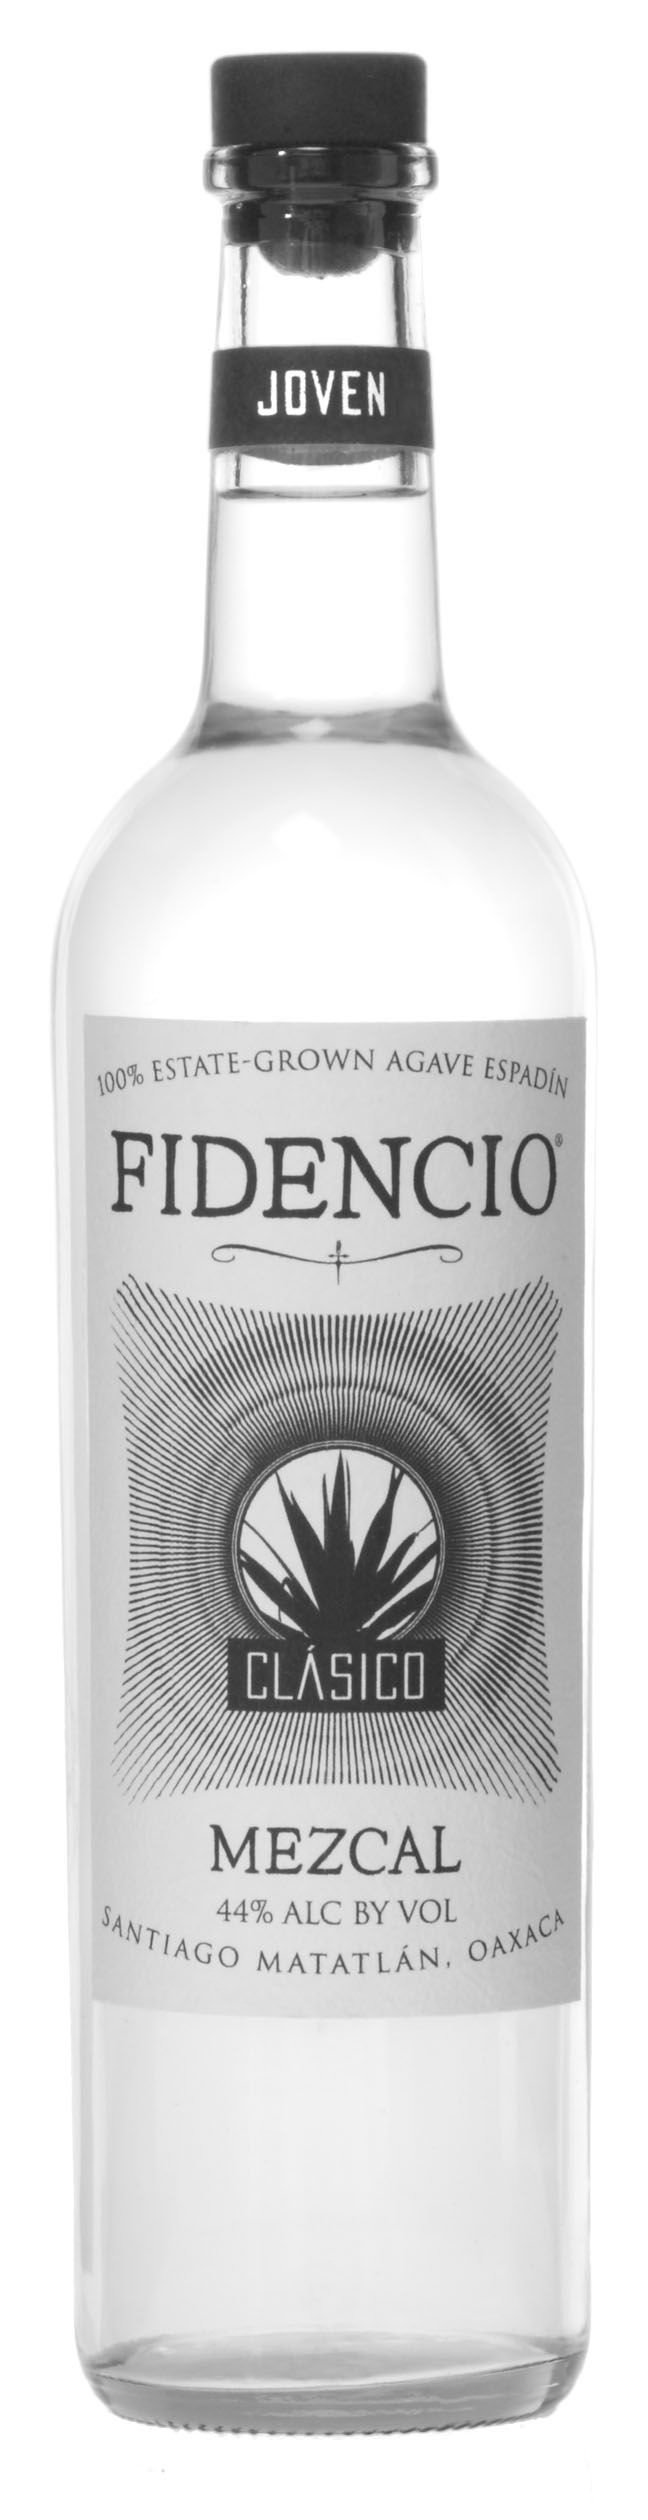 Yet another fabulous #mezcal brand that comes in one of three states - the Fidencio Sin Humo (without smoke), the Fidencio Clásico (double-distilled, classic taste, higher alcohol content), and the Fidencio Pechuga, (triple-distilled, 45.4% ABV). The producer is seeking organic certification. Top notch stuff. <||> #Fidencio #Mezcal